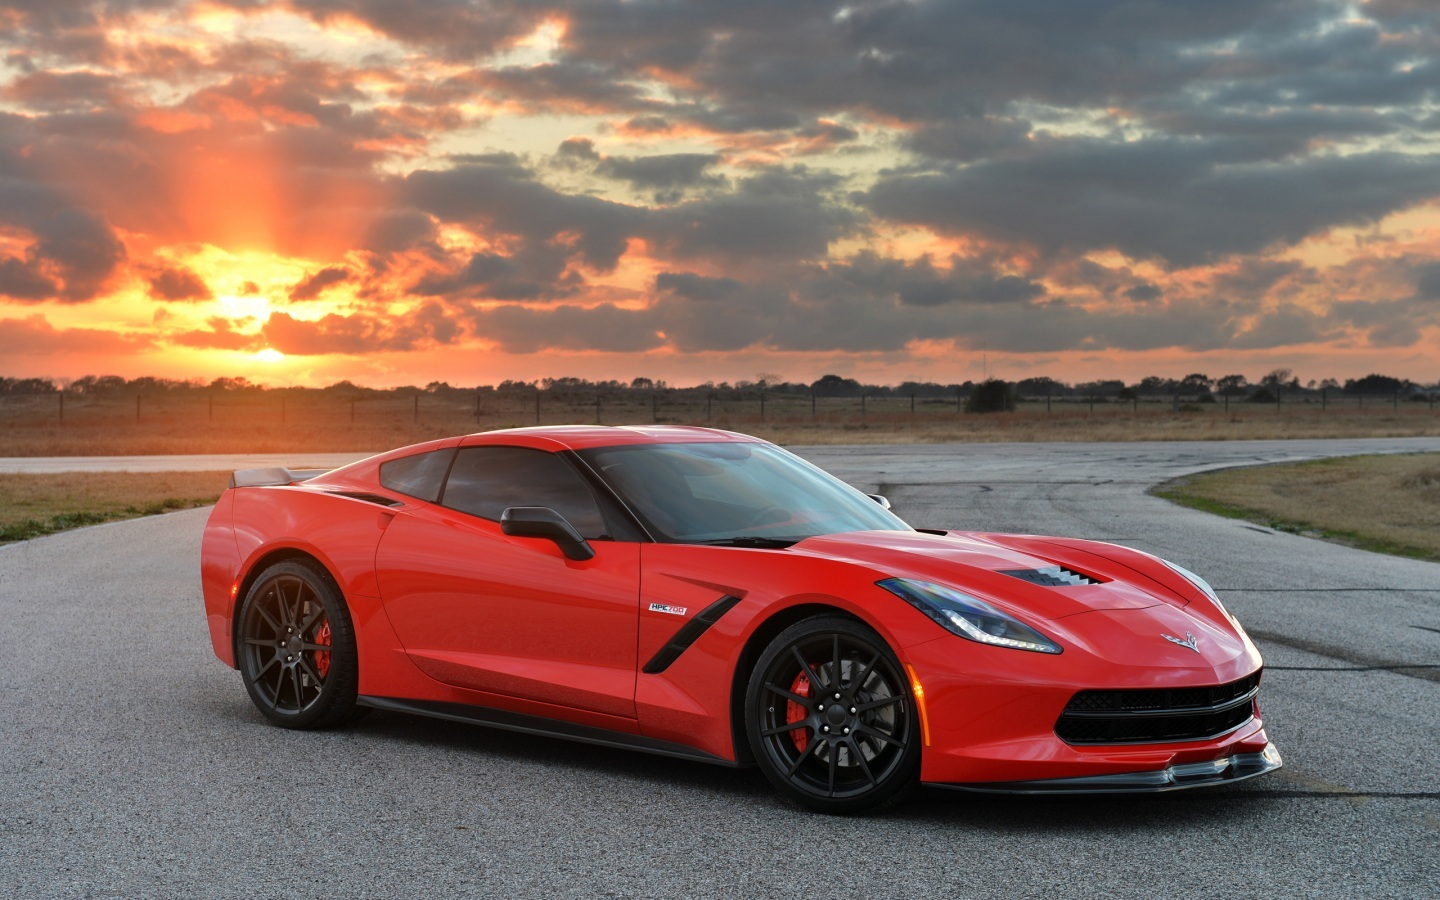 Corvette HD Wallpapers 1080p - WallpaperSafari | 1440 x 900 jpeg 373kB